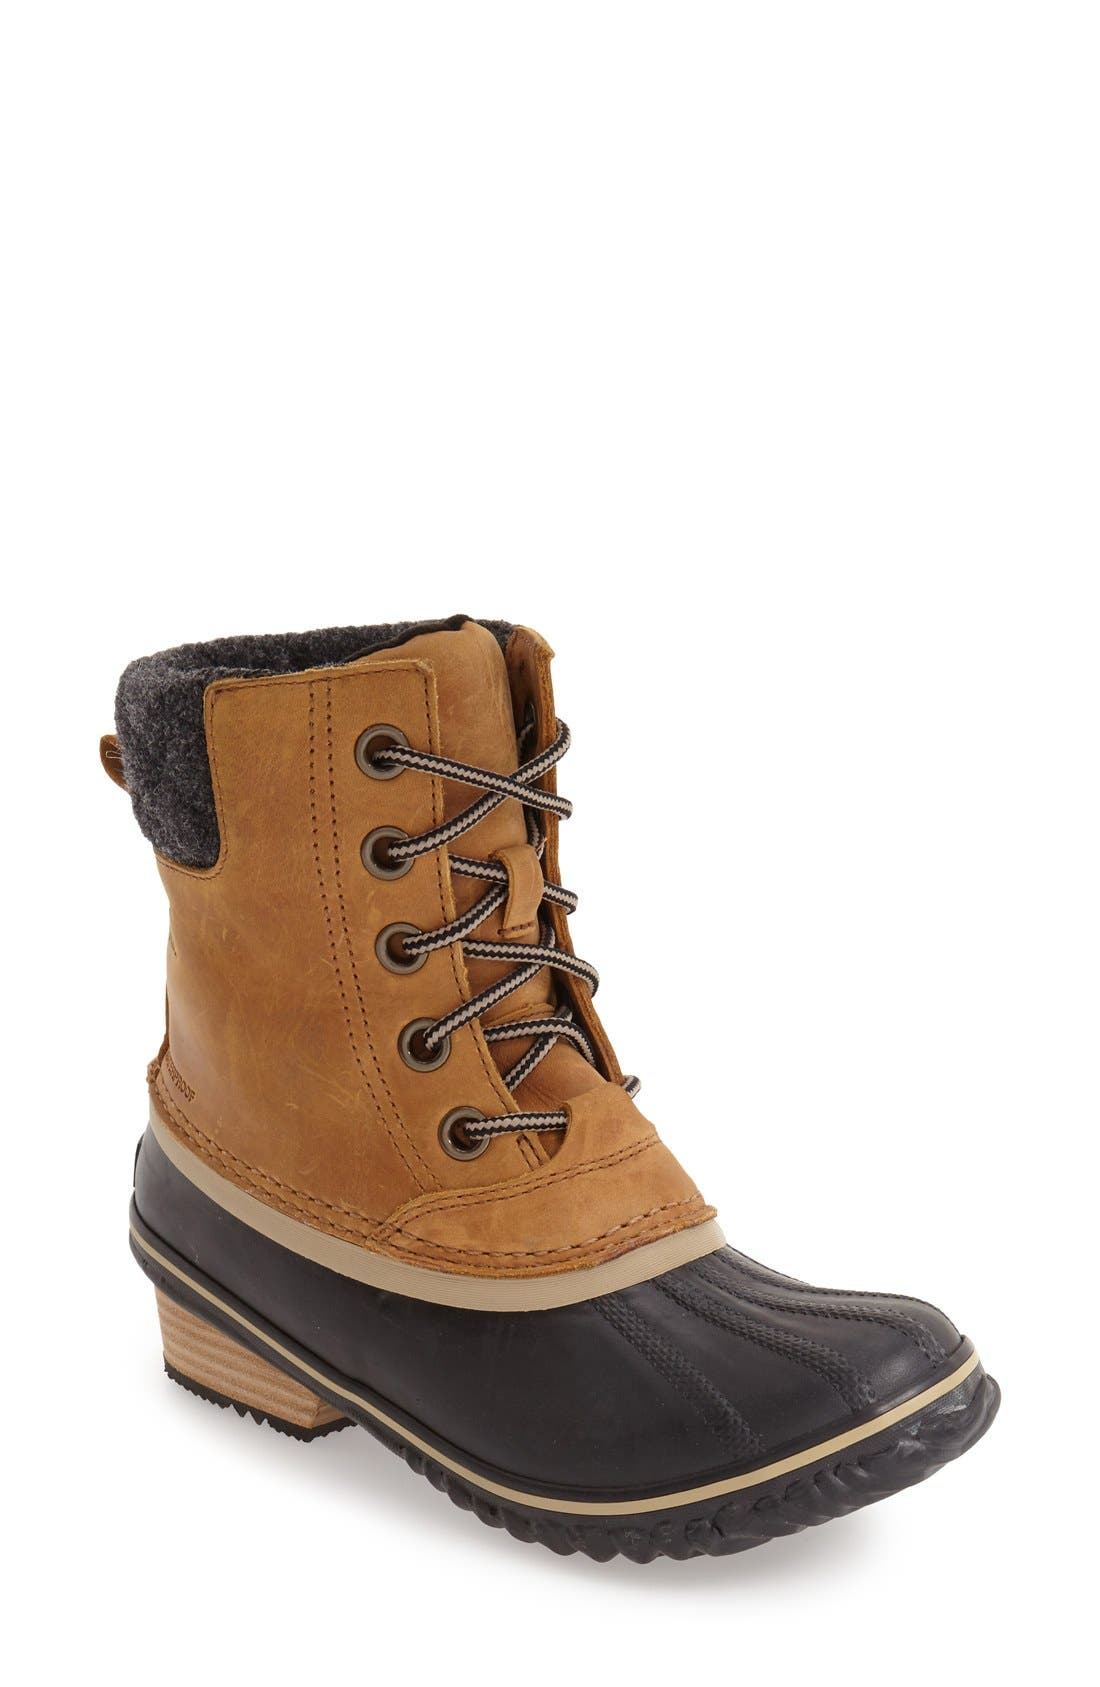 SLIMPACK II COLD WEATHER BOOTS